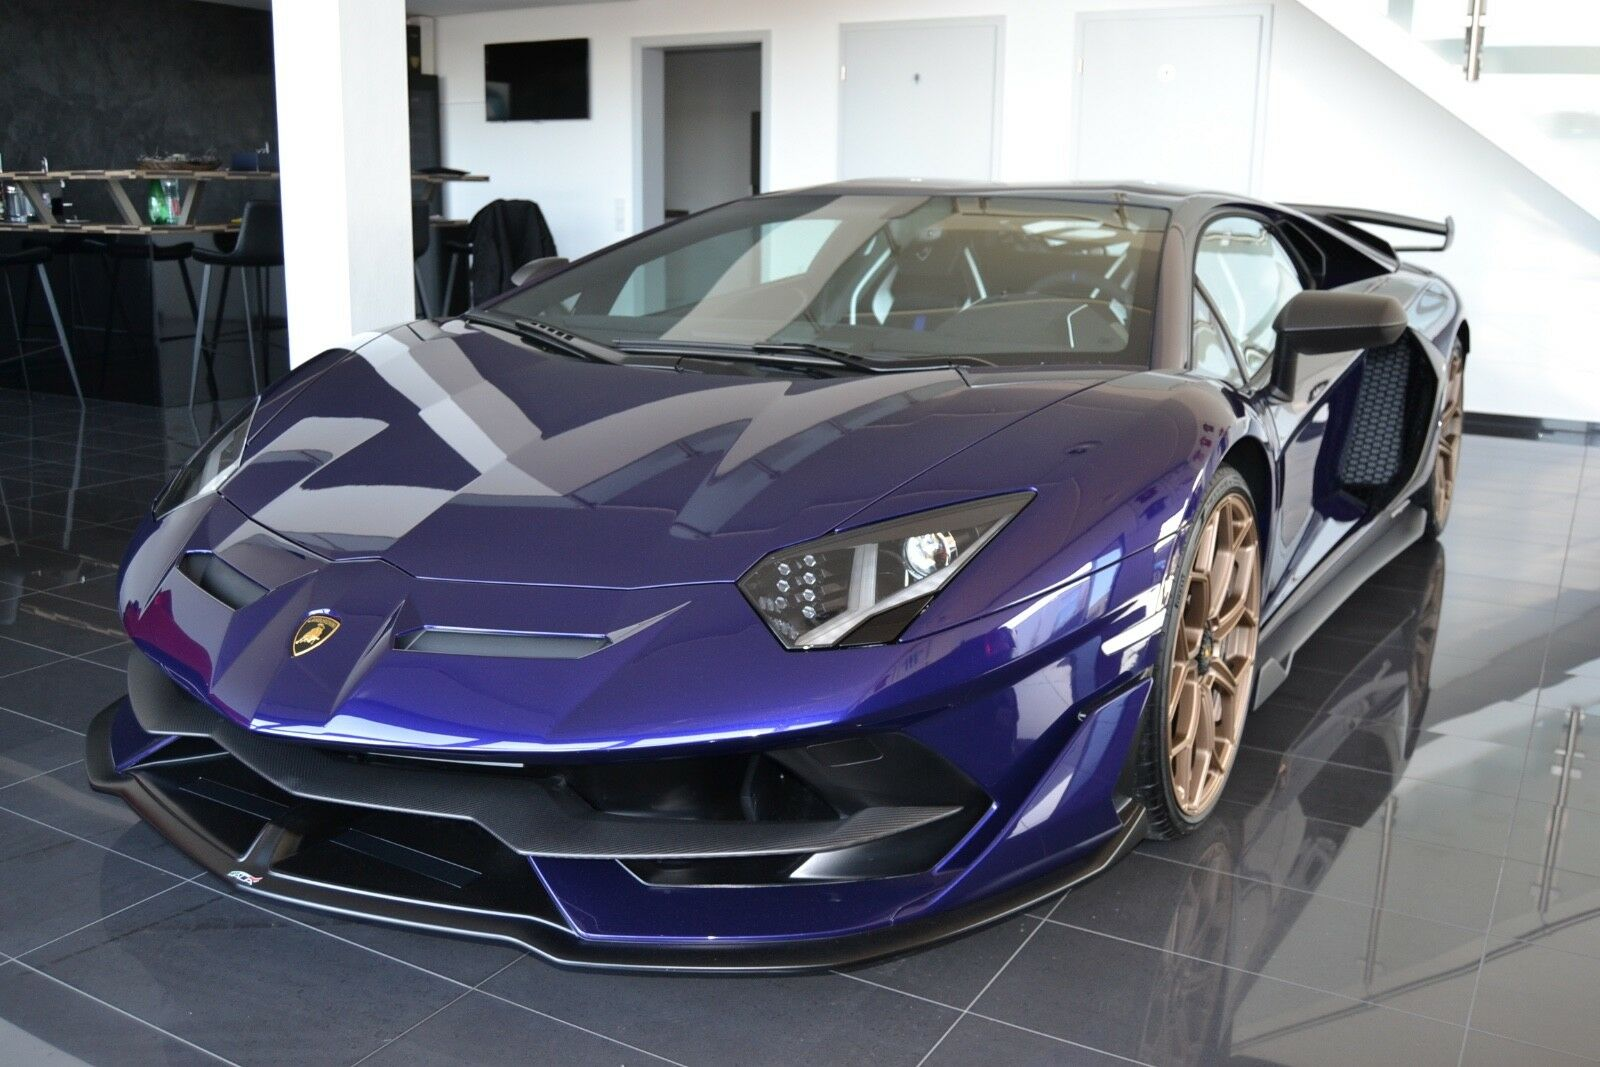 Lamborghini Aventador Svj Luxury Pulse Cars Germany For Sale